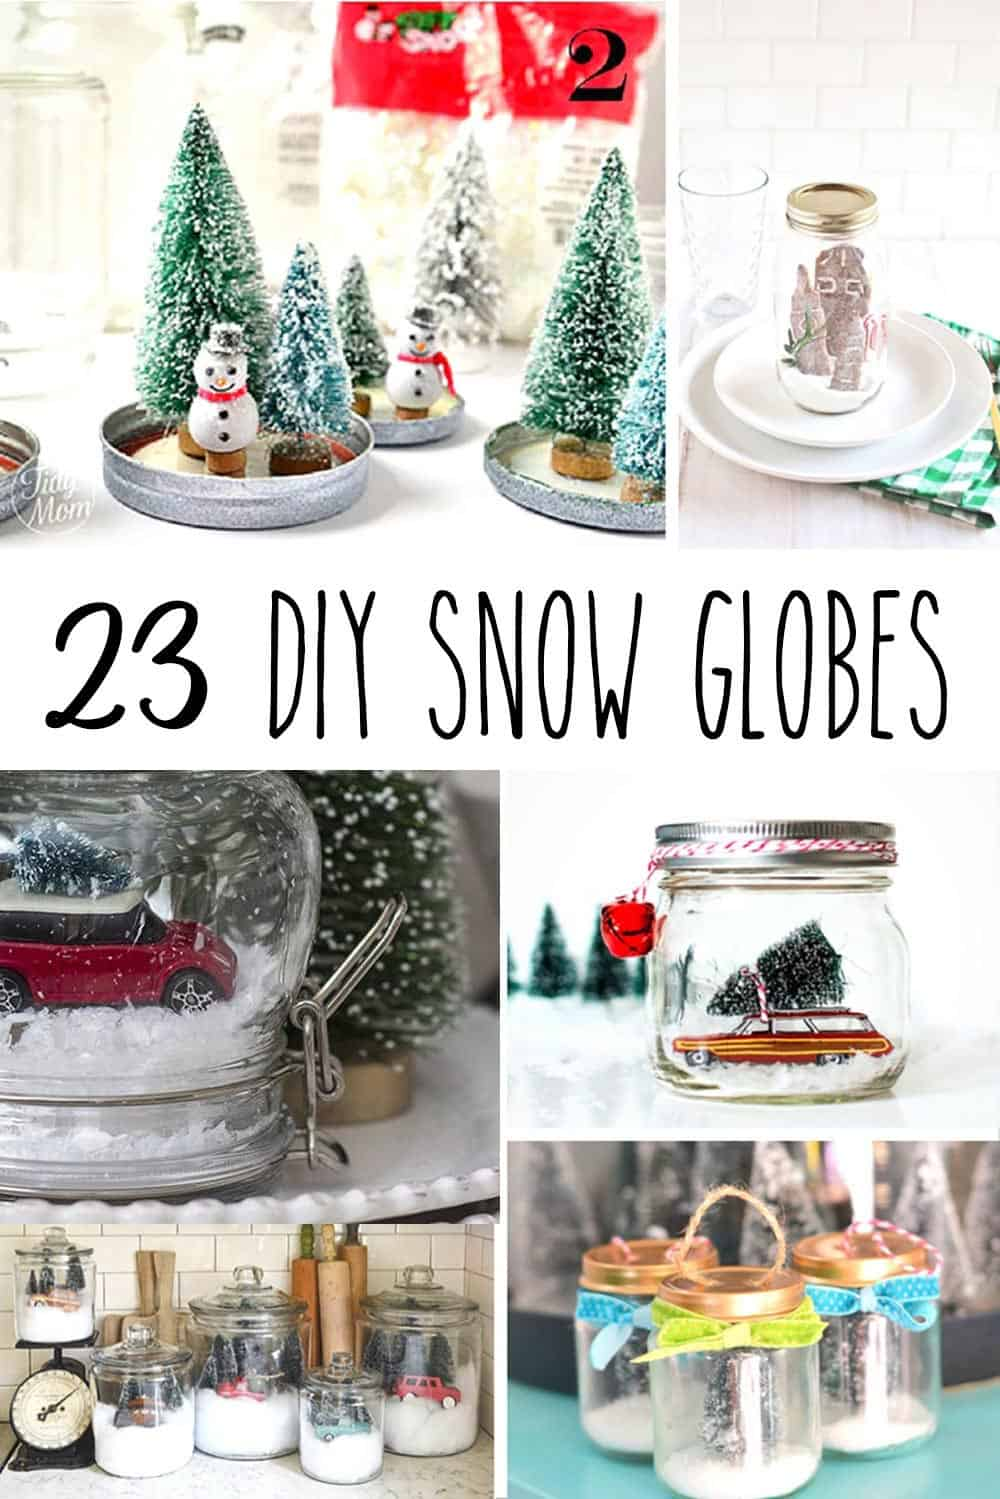 23-diy-snow-globes-pin-wkg